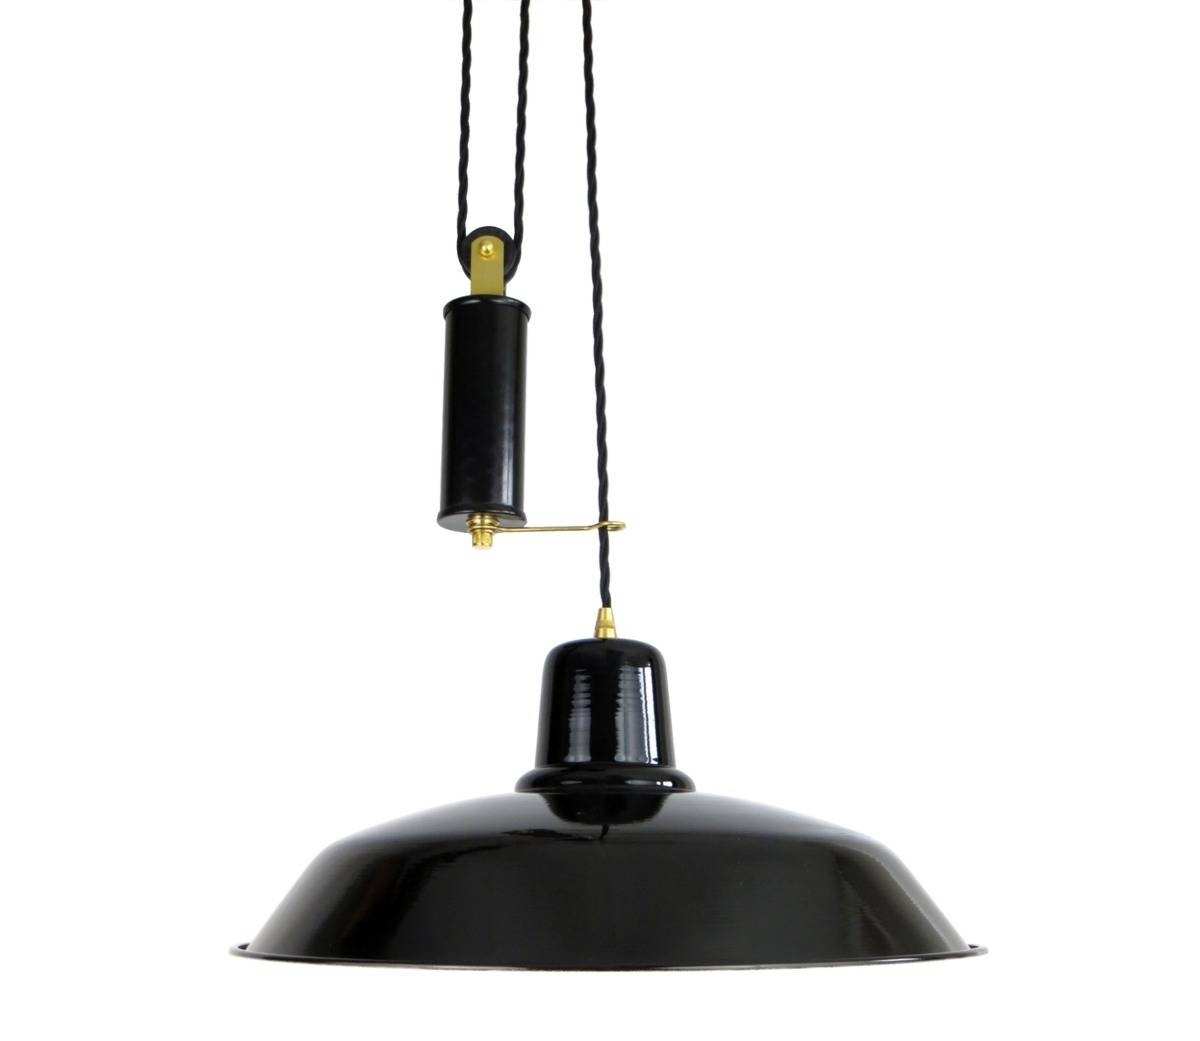 Lighting > Pendant > Rise And Fall Lights - The French House throughout Rise and Fall Pendant Lights (Image 12 of 15)